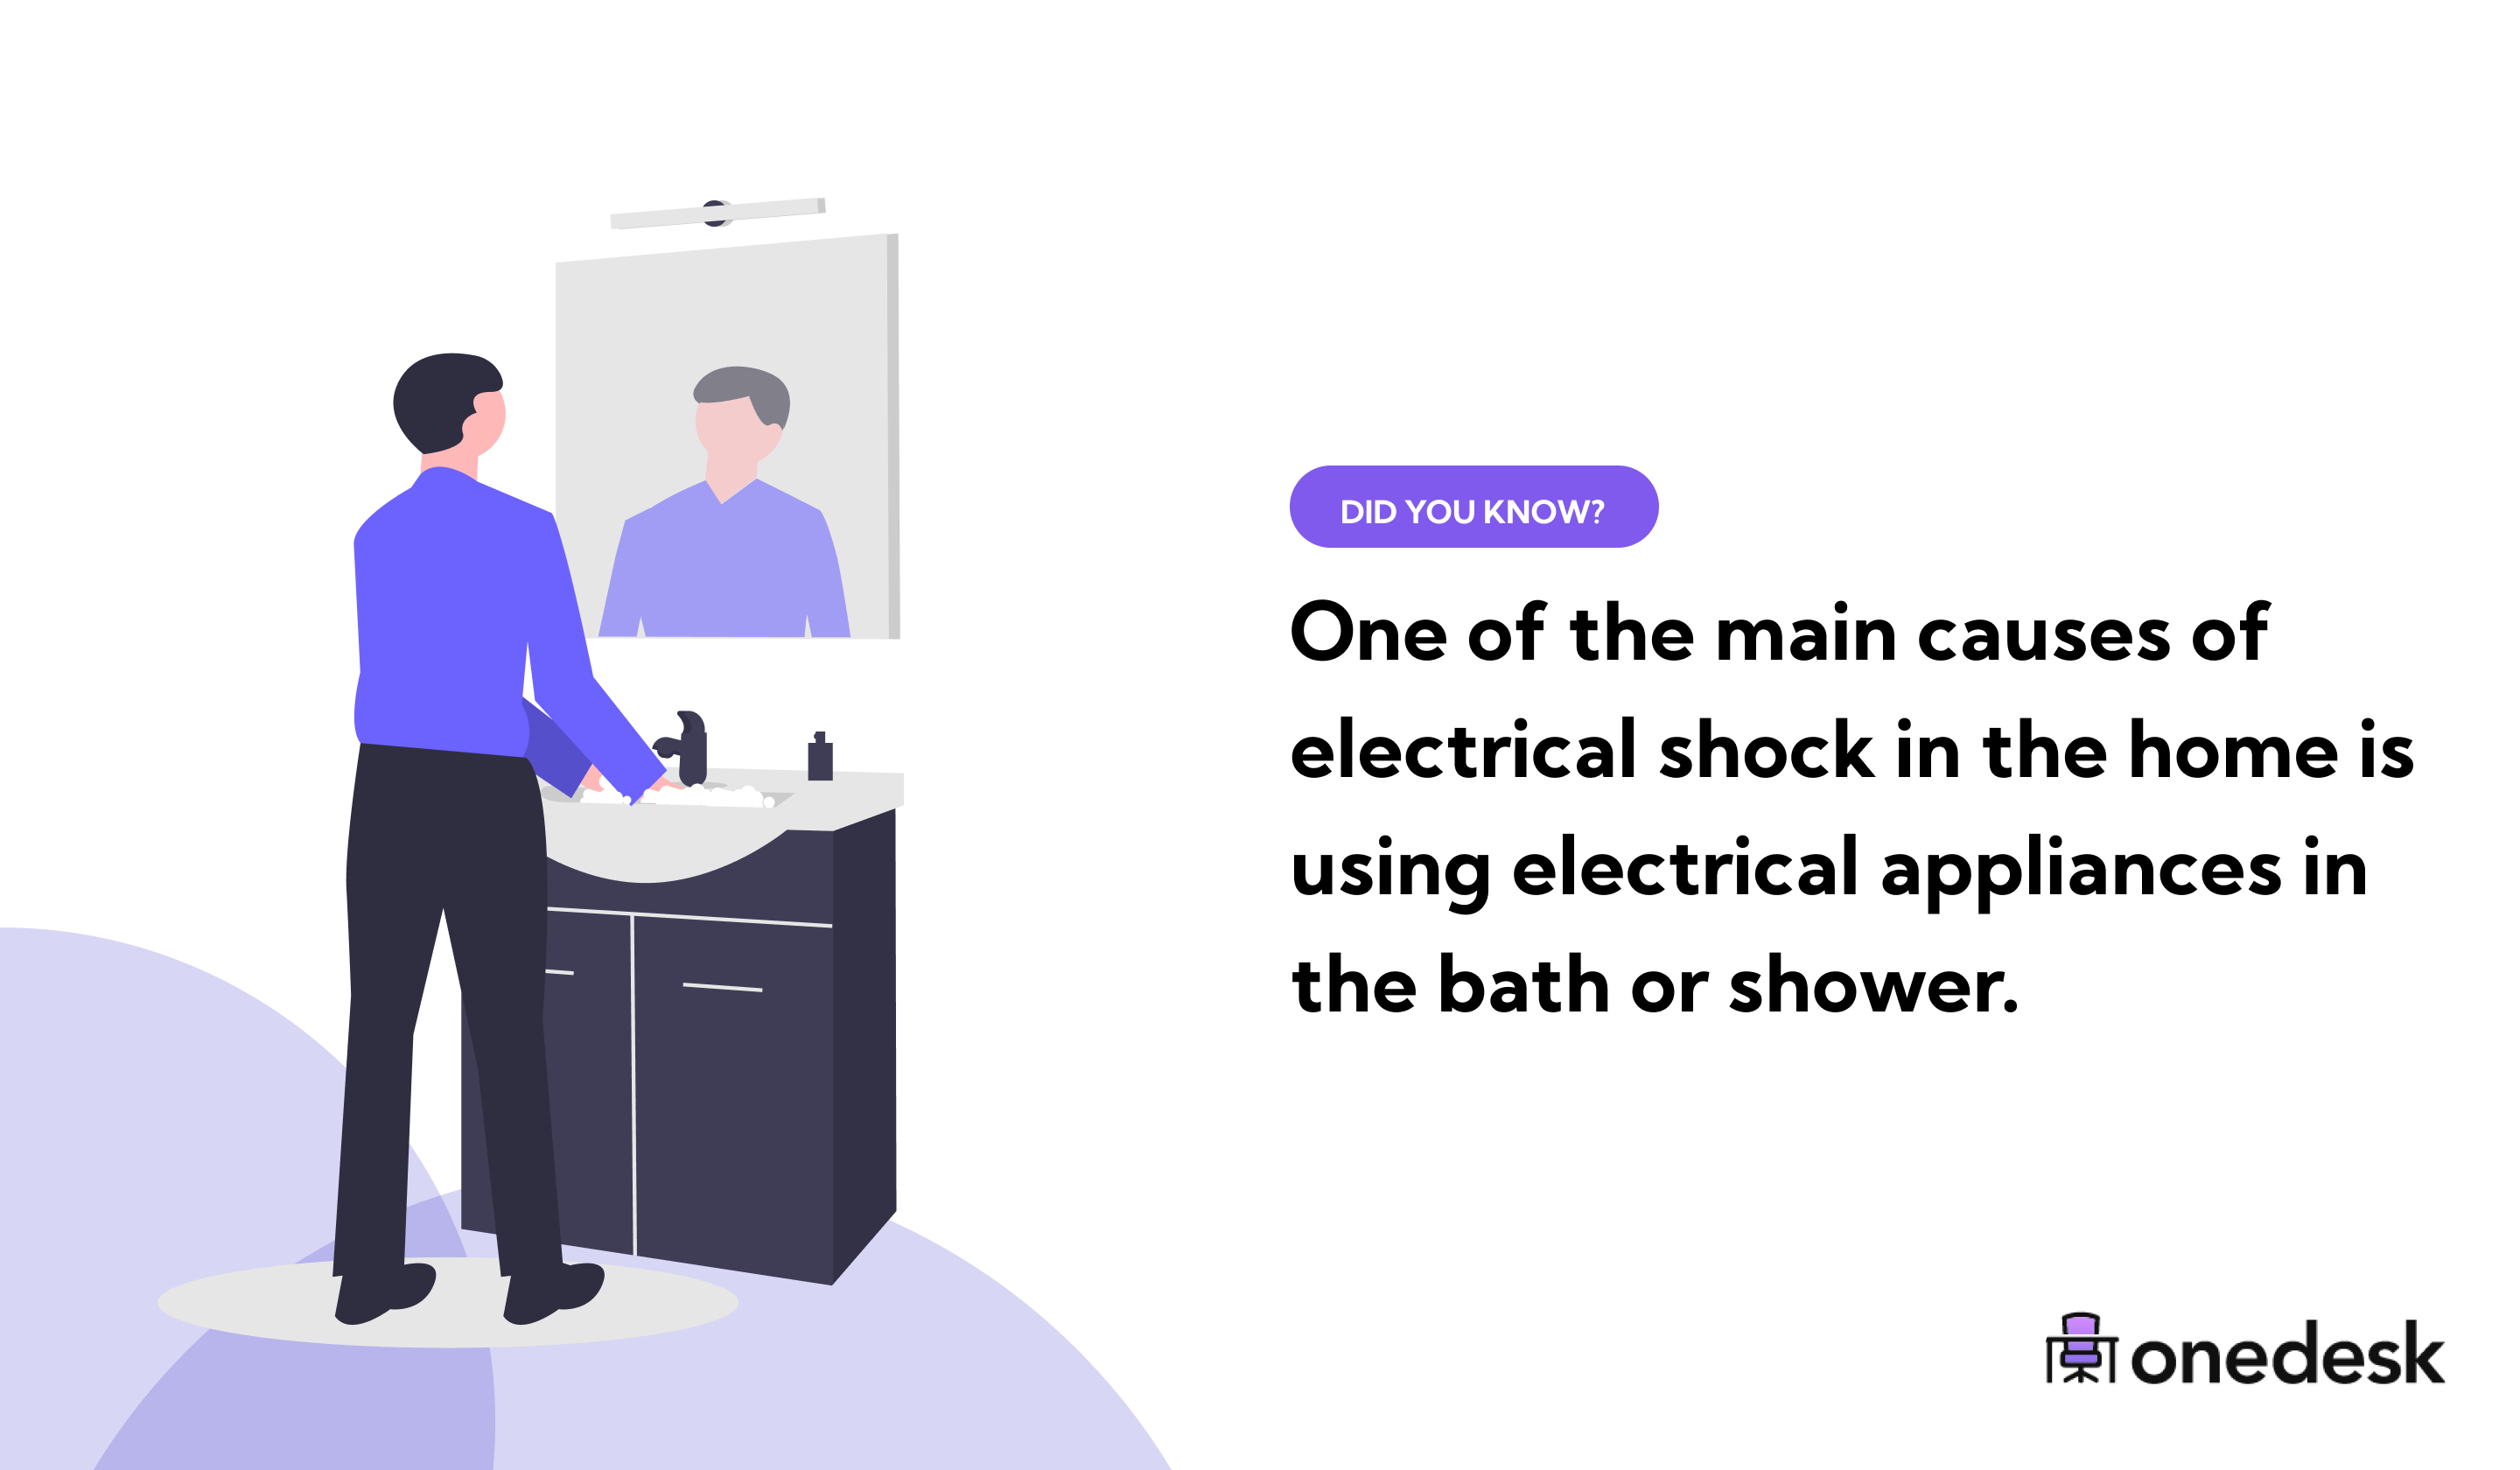 main causes of electrical shock in the home